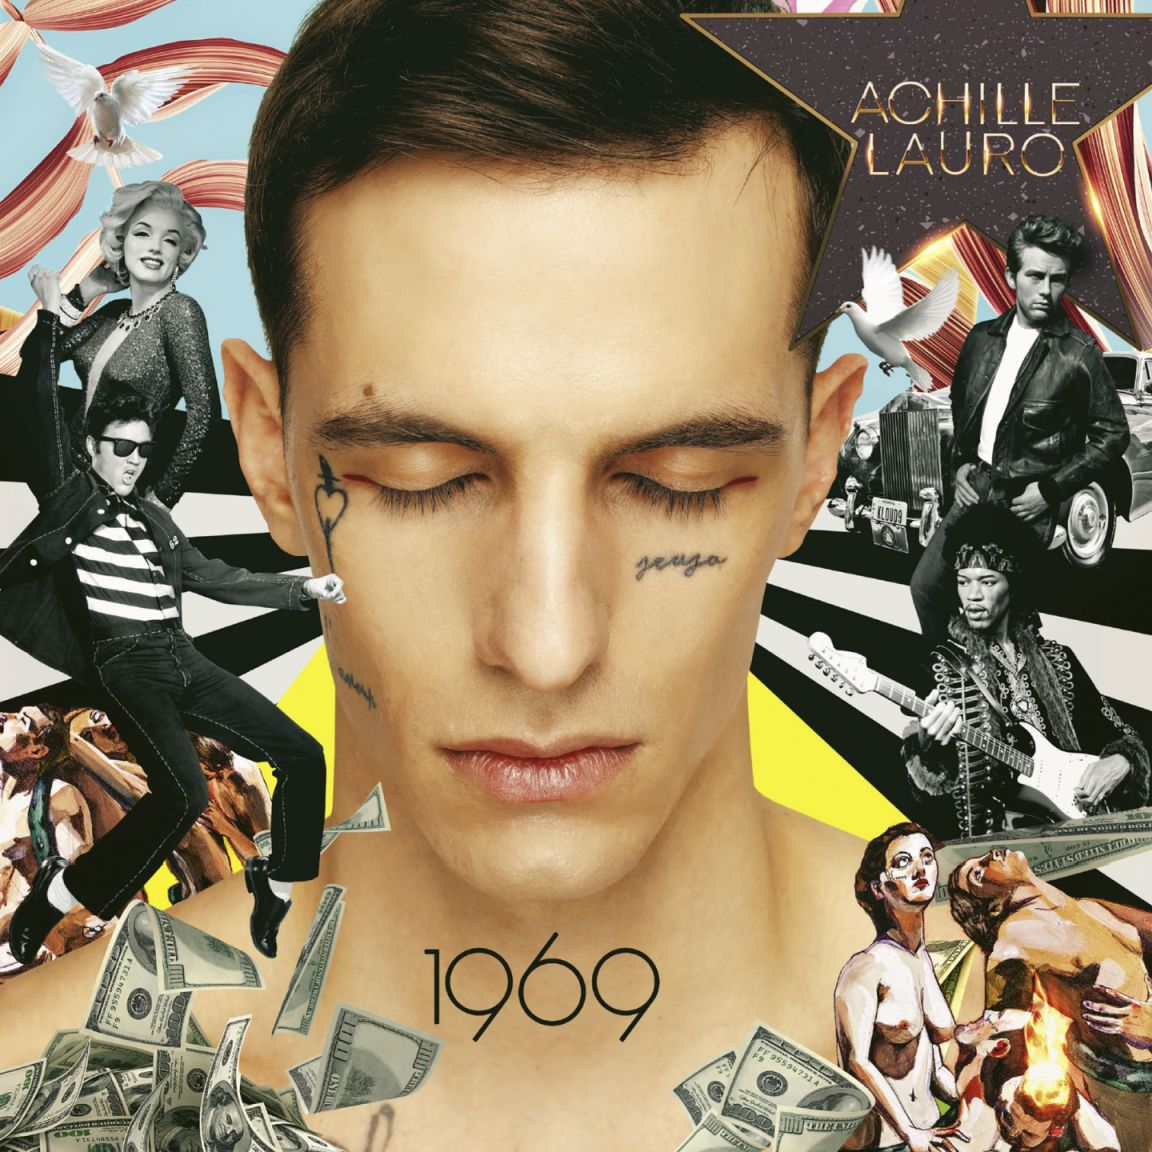 Achille Lauro - 1969 (Cover album)